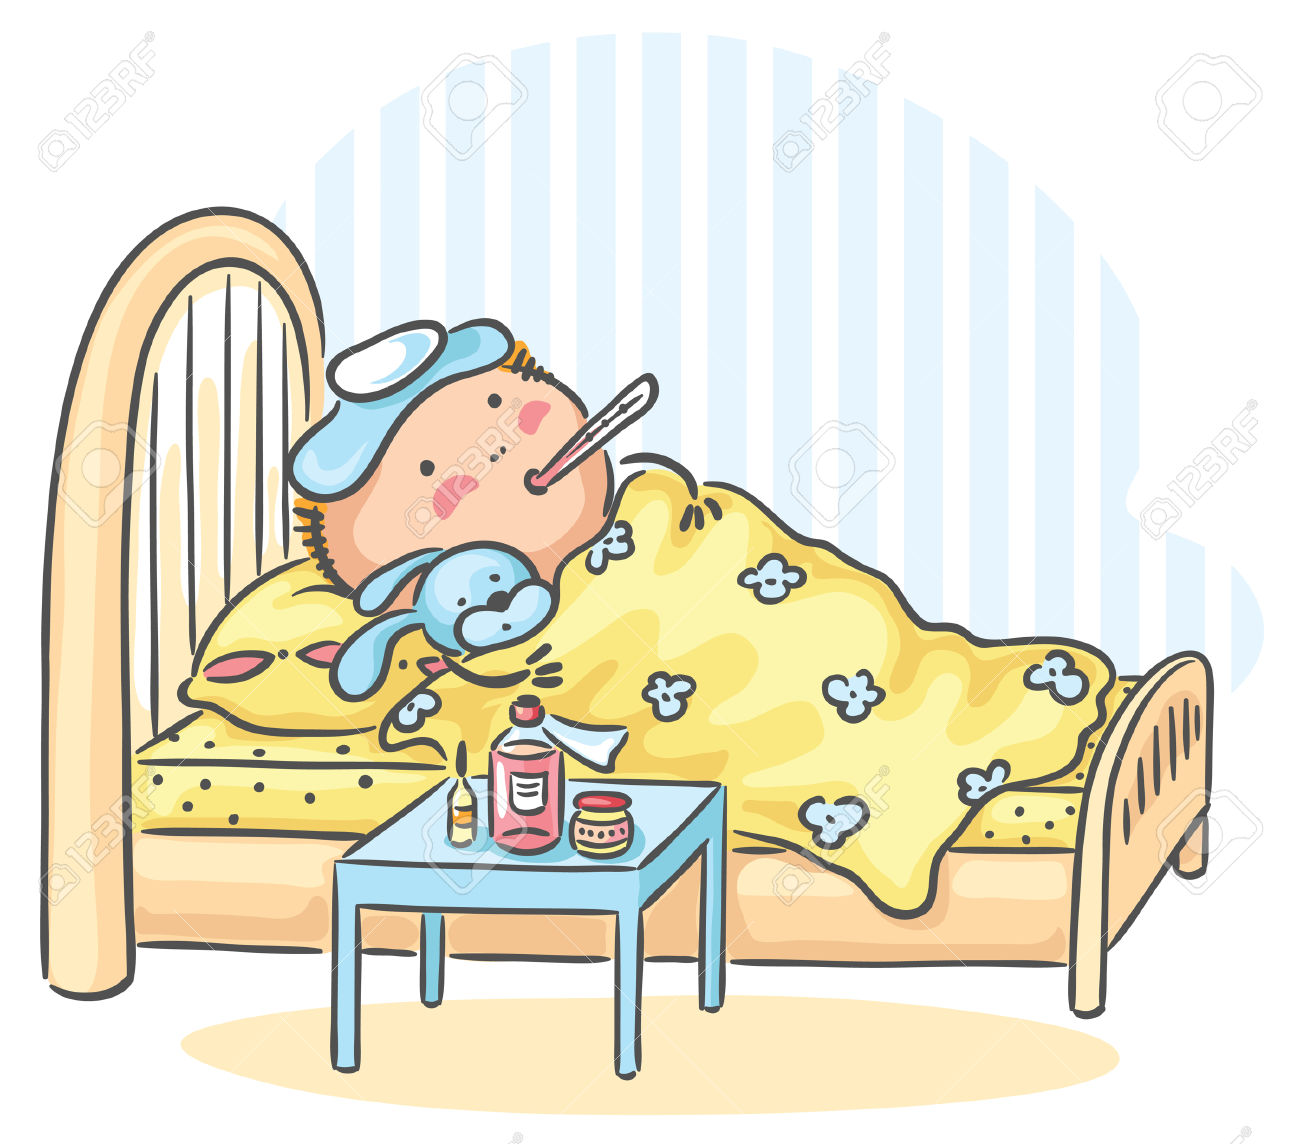 A Child Has Got Flu And Is Lying In Bed With A Thermometer Royalty.